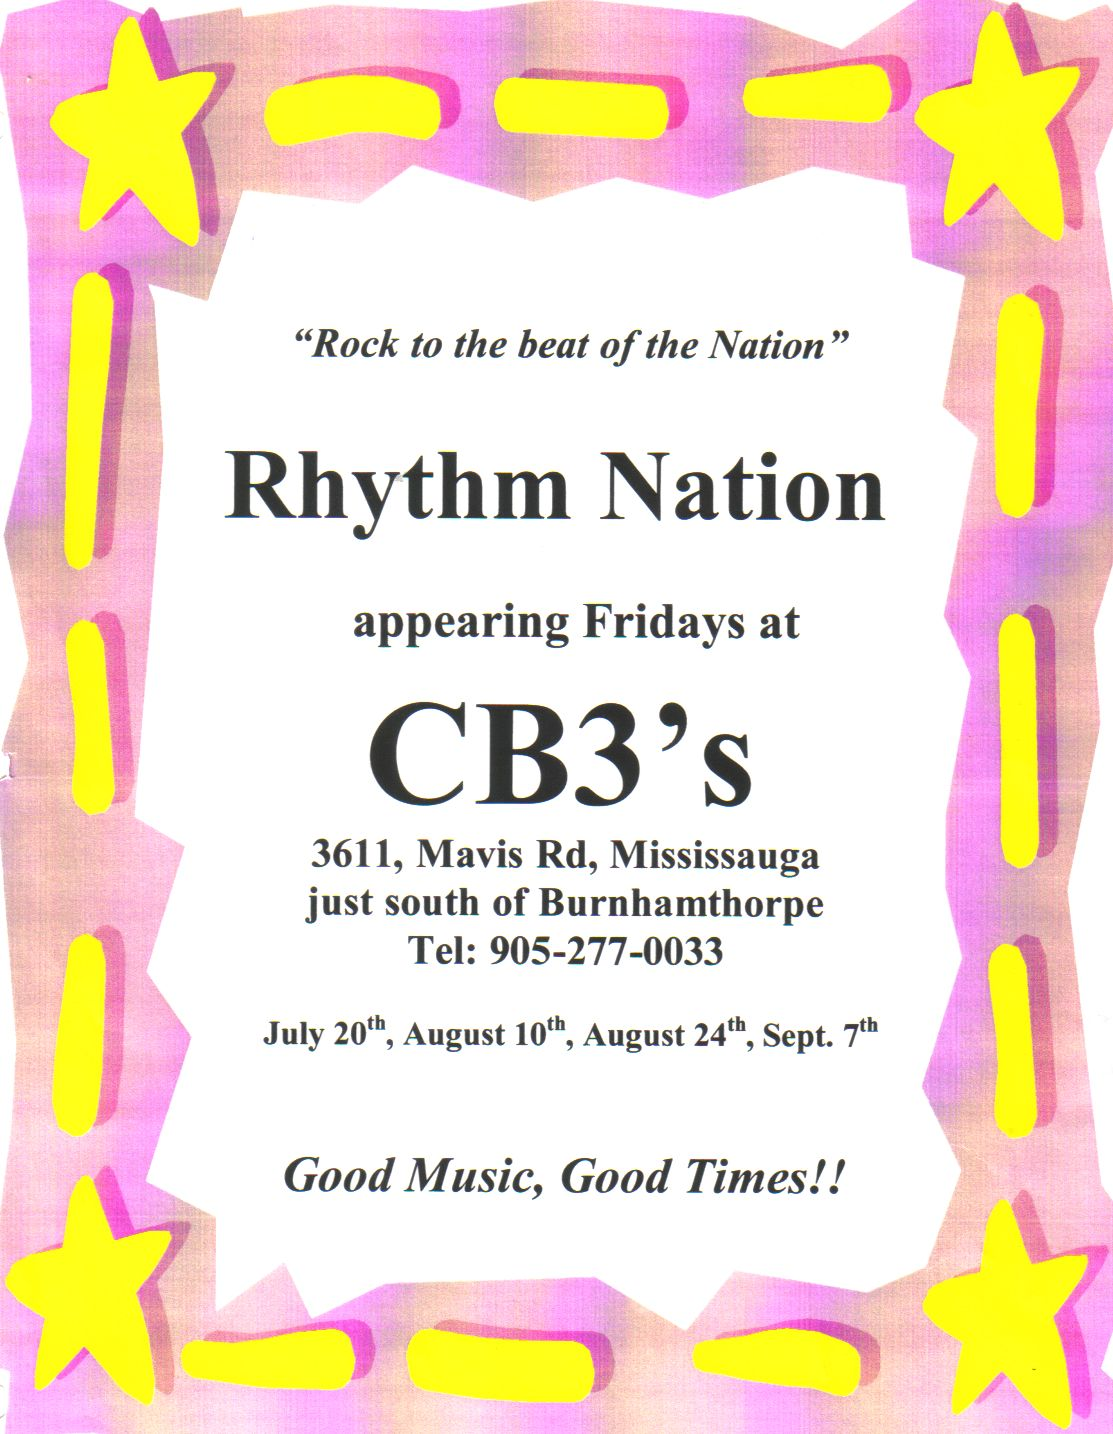 Rhythm Nation - CB3's